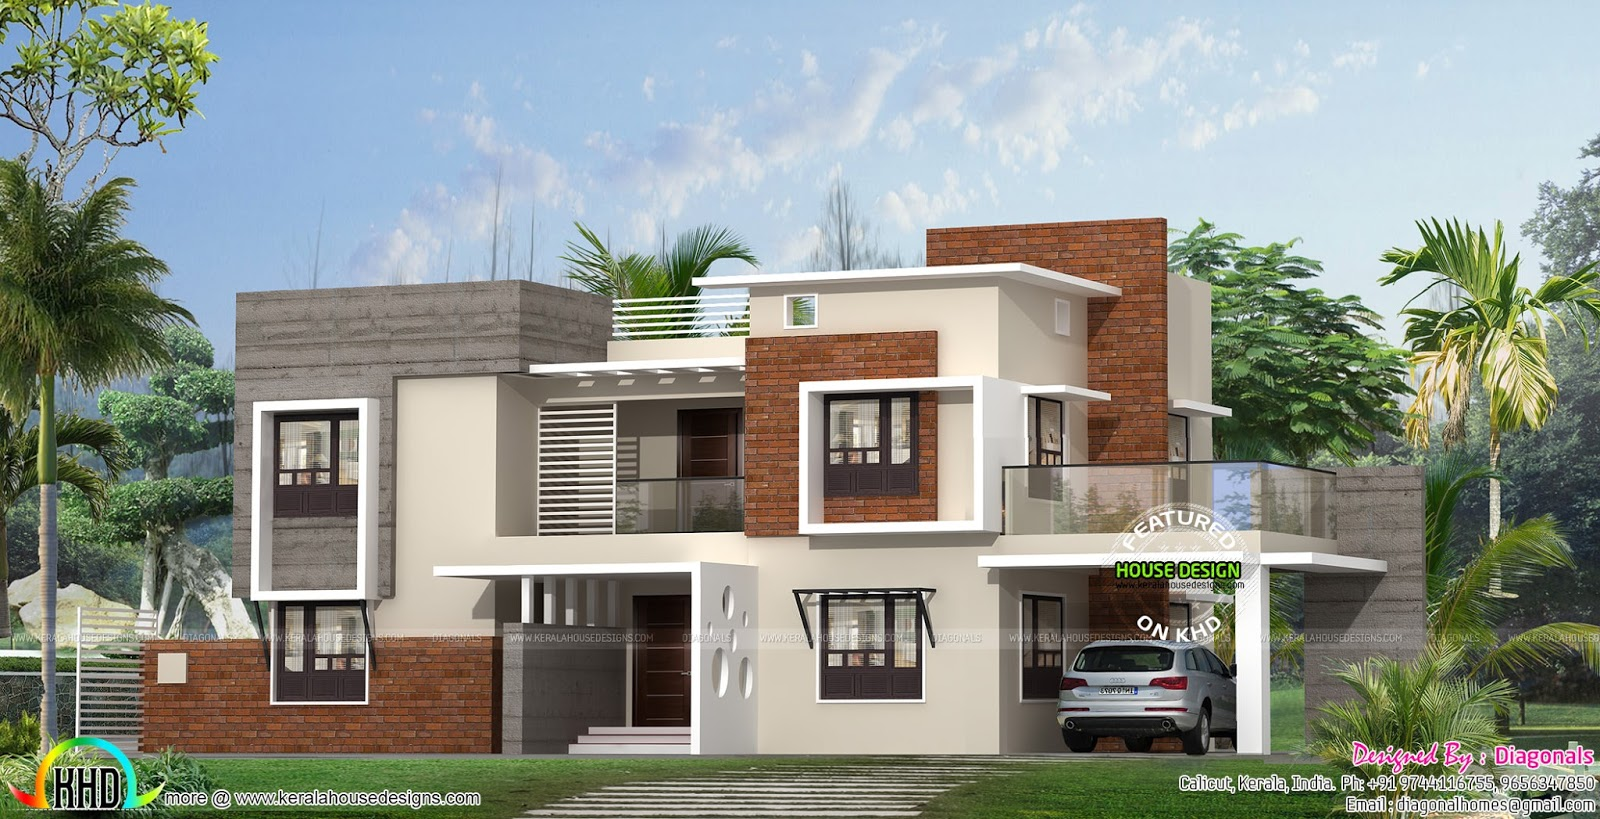 Box model modern flat roof home plan kerala home design for New model veedu photos